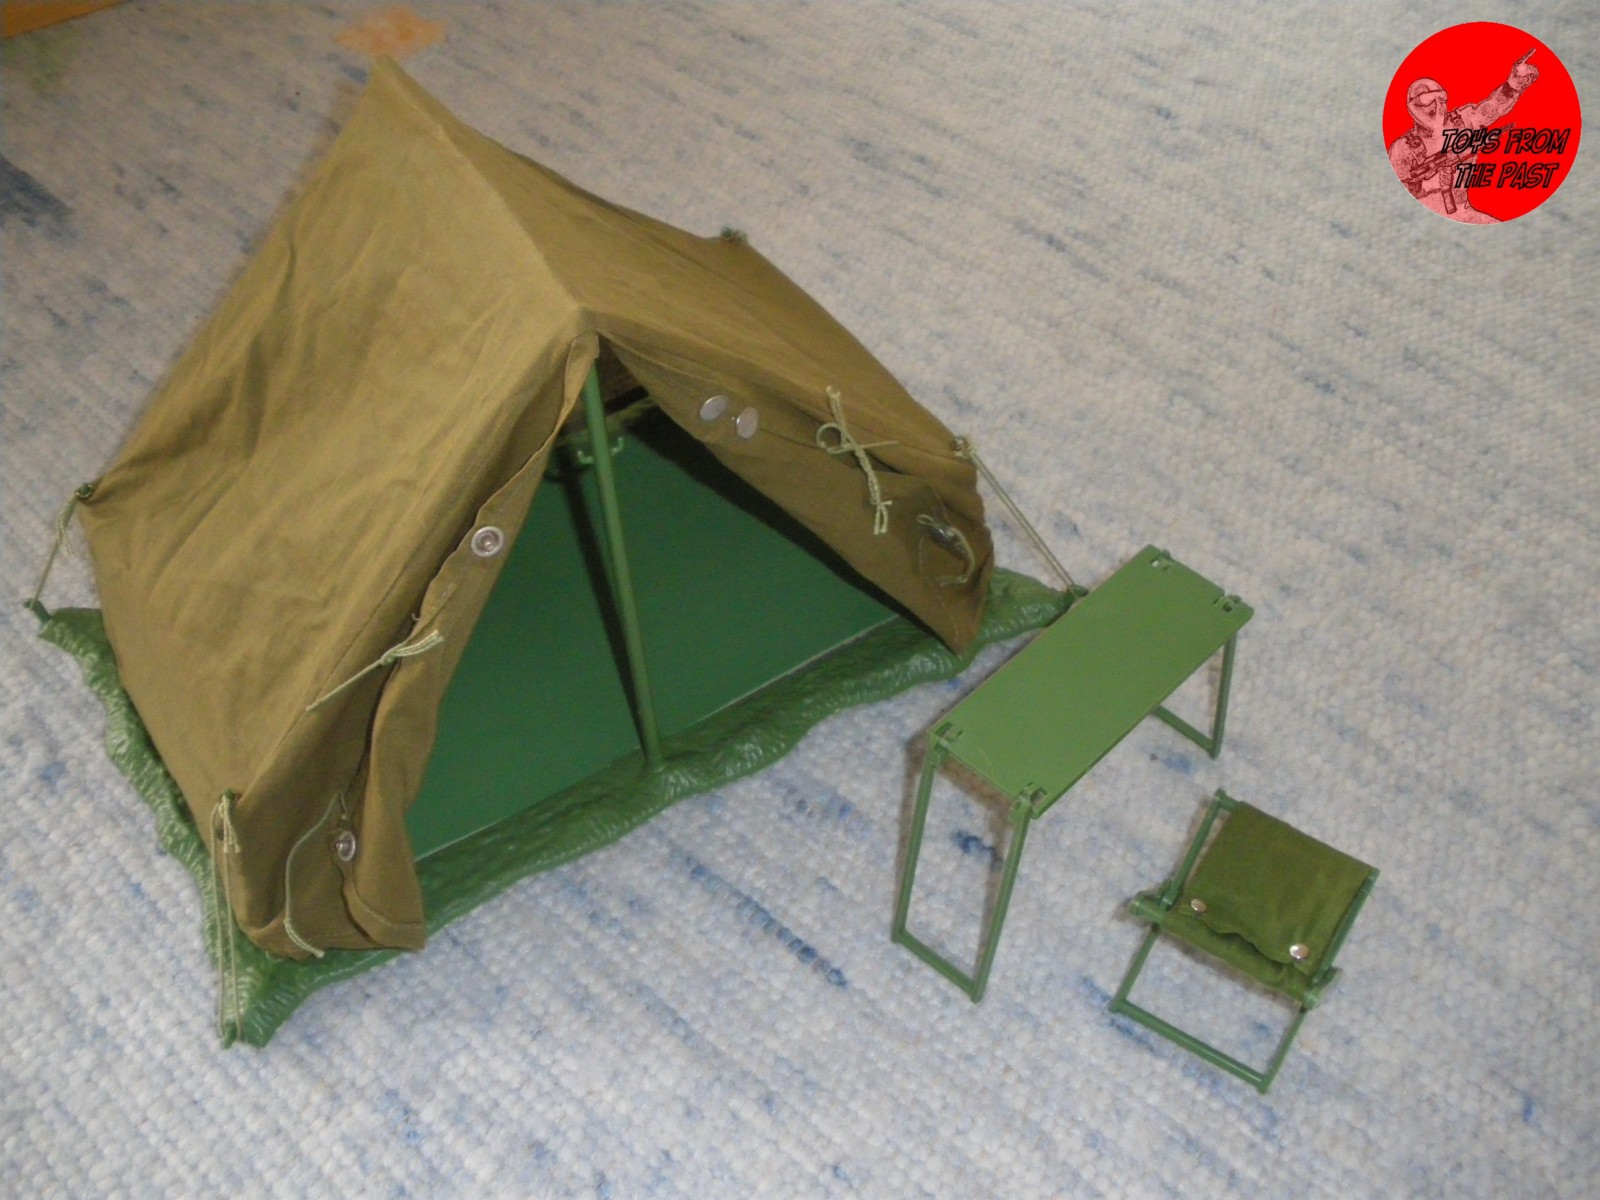 I cannot talk so far about the figures because I do not own any of those. I recently acquired this tent which belongs to this series and thatu0027s what you ... & Toys from the Past: #36 ACTION TEAM/ ADVENTURE TEAM u2013 ZELT (1970)